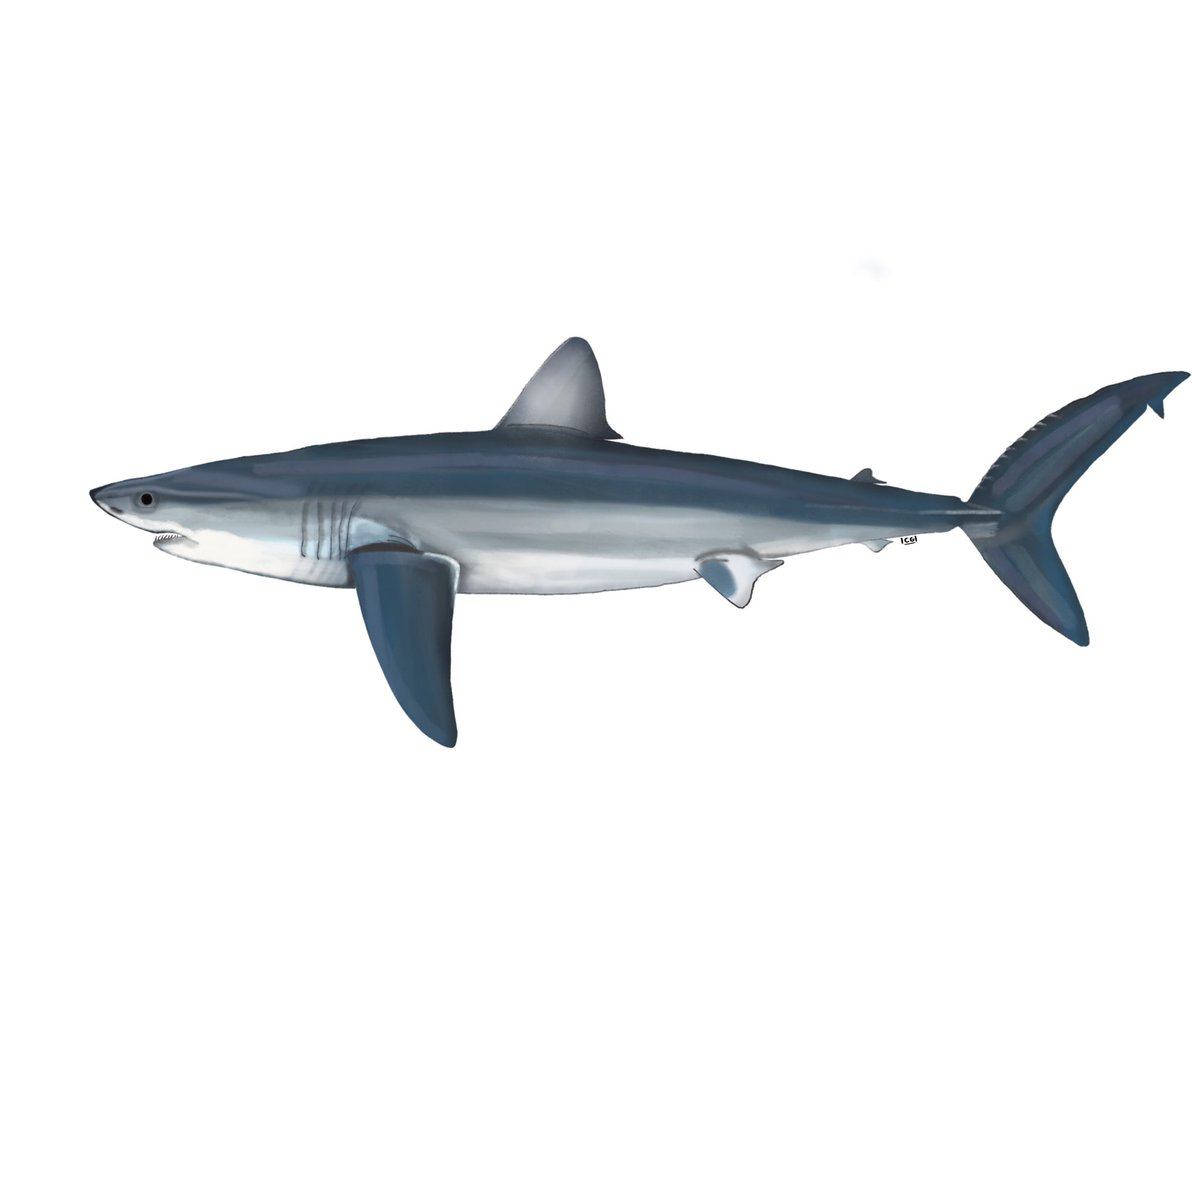 The #SharkLeague is eager to see South Africa's leadership on mako conservation extend to #ICCAT with support for Canada 🇨🇦/Senegal 🇸🇳 proposal of science-based int'l limits. Any guidance on when/if 🇿🇦 position for July meeting might be developed/announced? 🙏 #MakeOrBreak4Makos